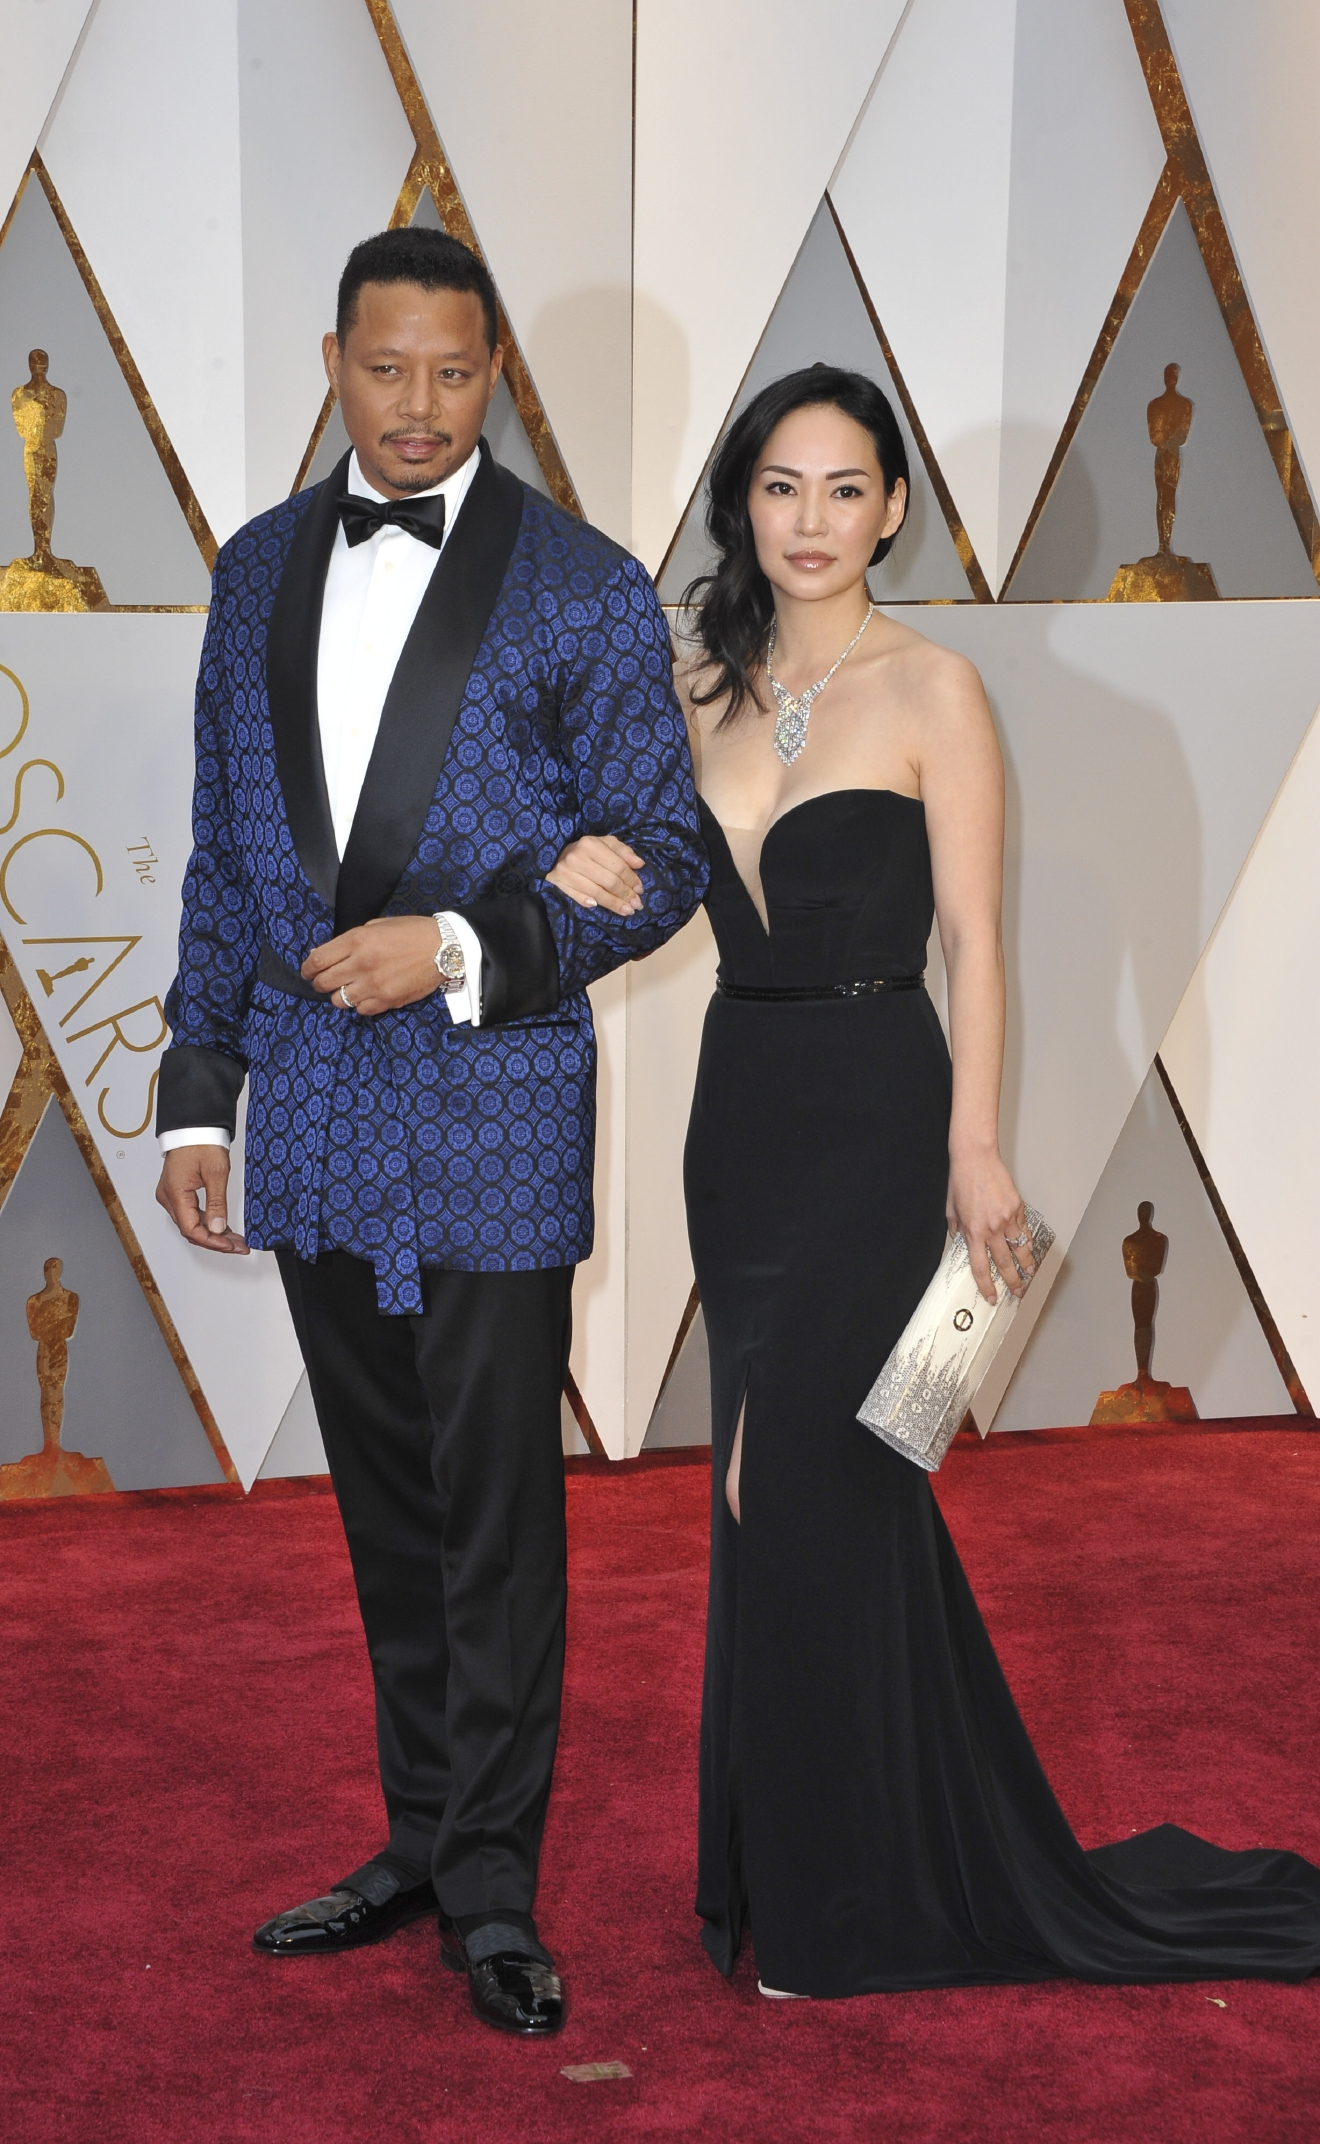 The 89th Annual Academy Awards Arrivals  Featuring: Terrence Howard, Mira Pak Where: Los Angeles, California, United States When: 27 Feb 2017 Credit: Apega/WENN.com